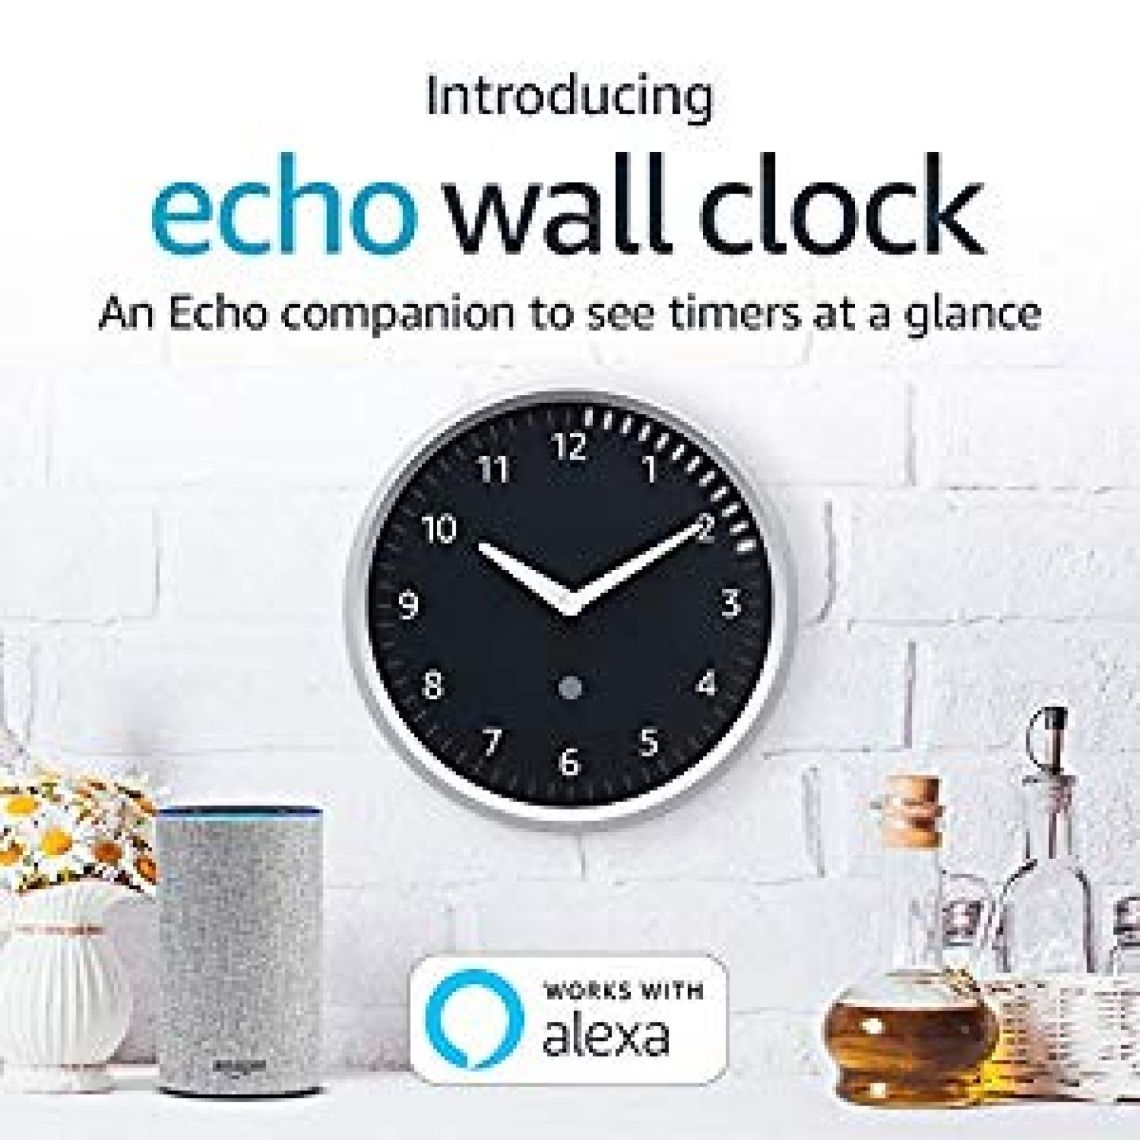 Amazon.com: Echo Wall Clock - see timers at a glance - requires compatible Echo device: Amazon Devices